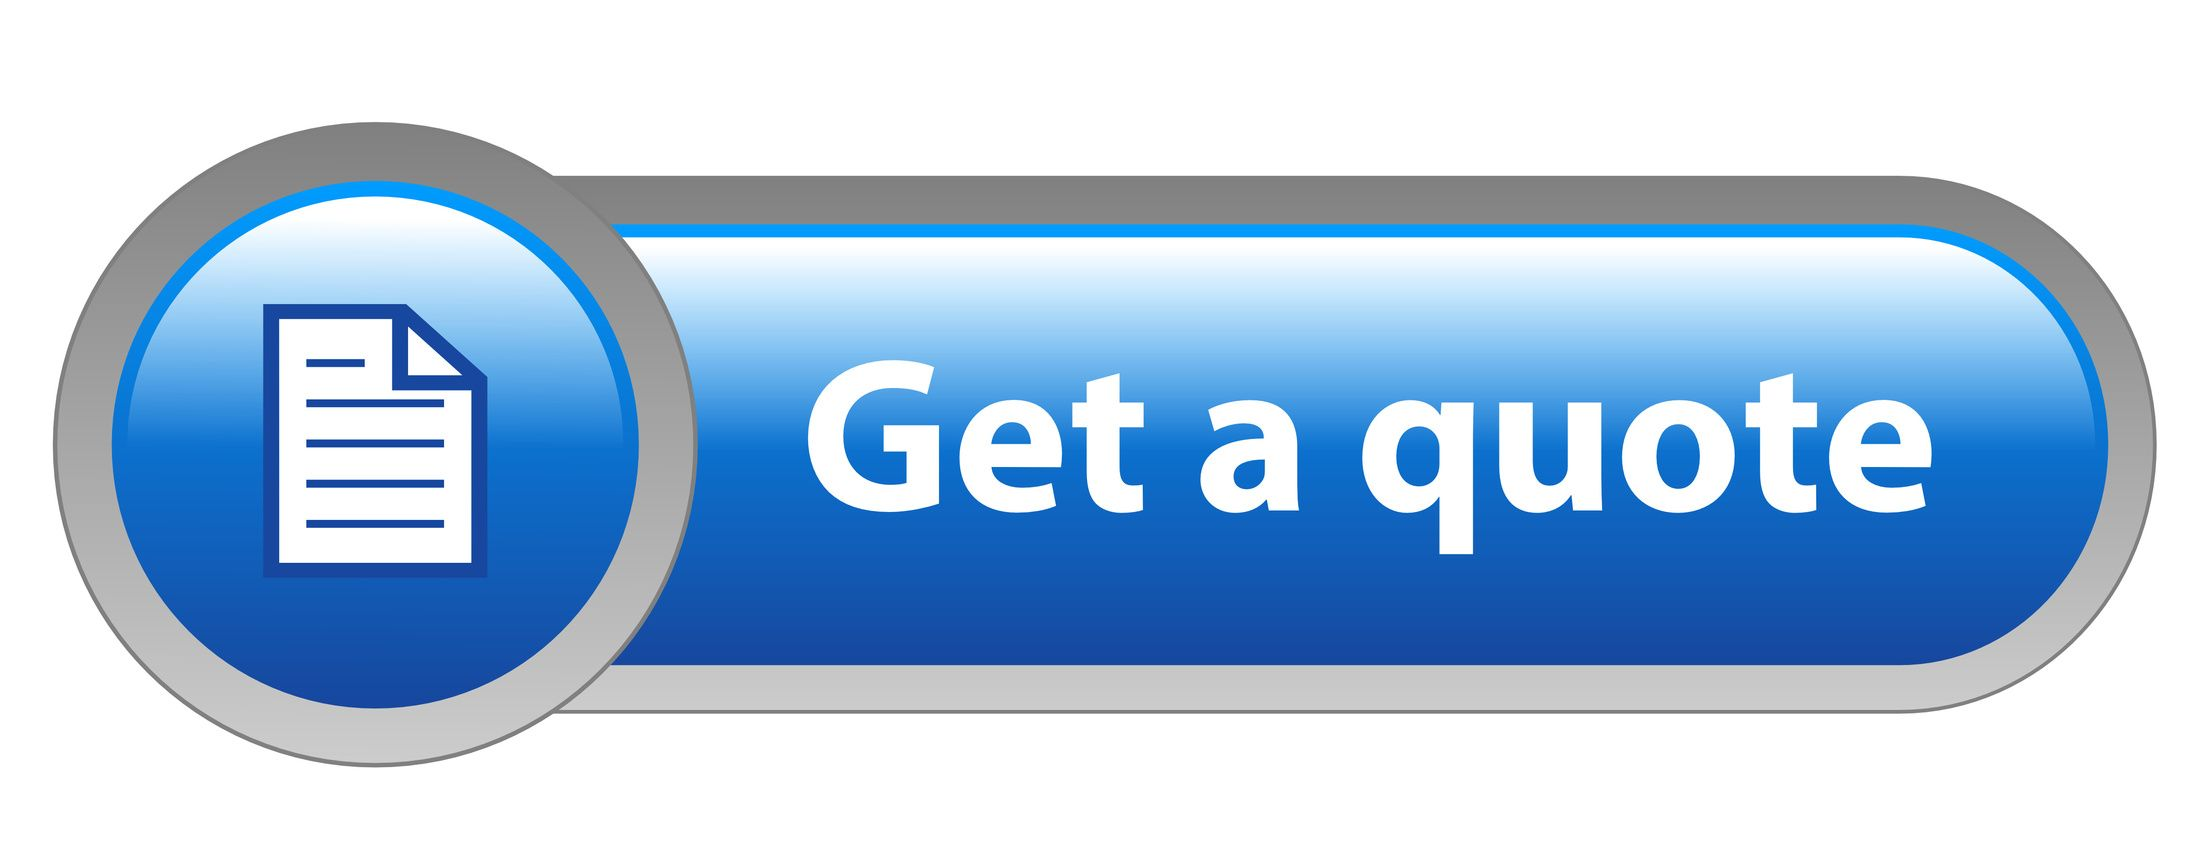 Get A Quote Bouton Valider Png  Recherche Google  Bouton Valider Png .